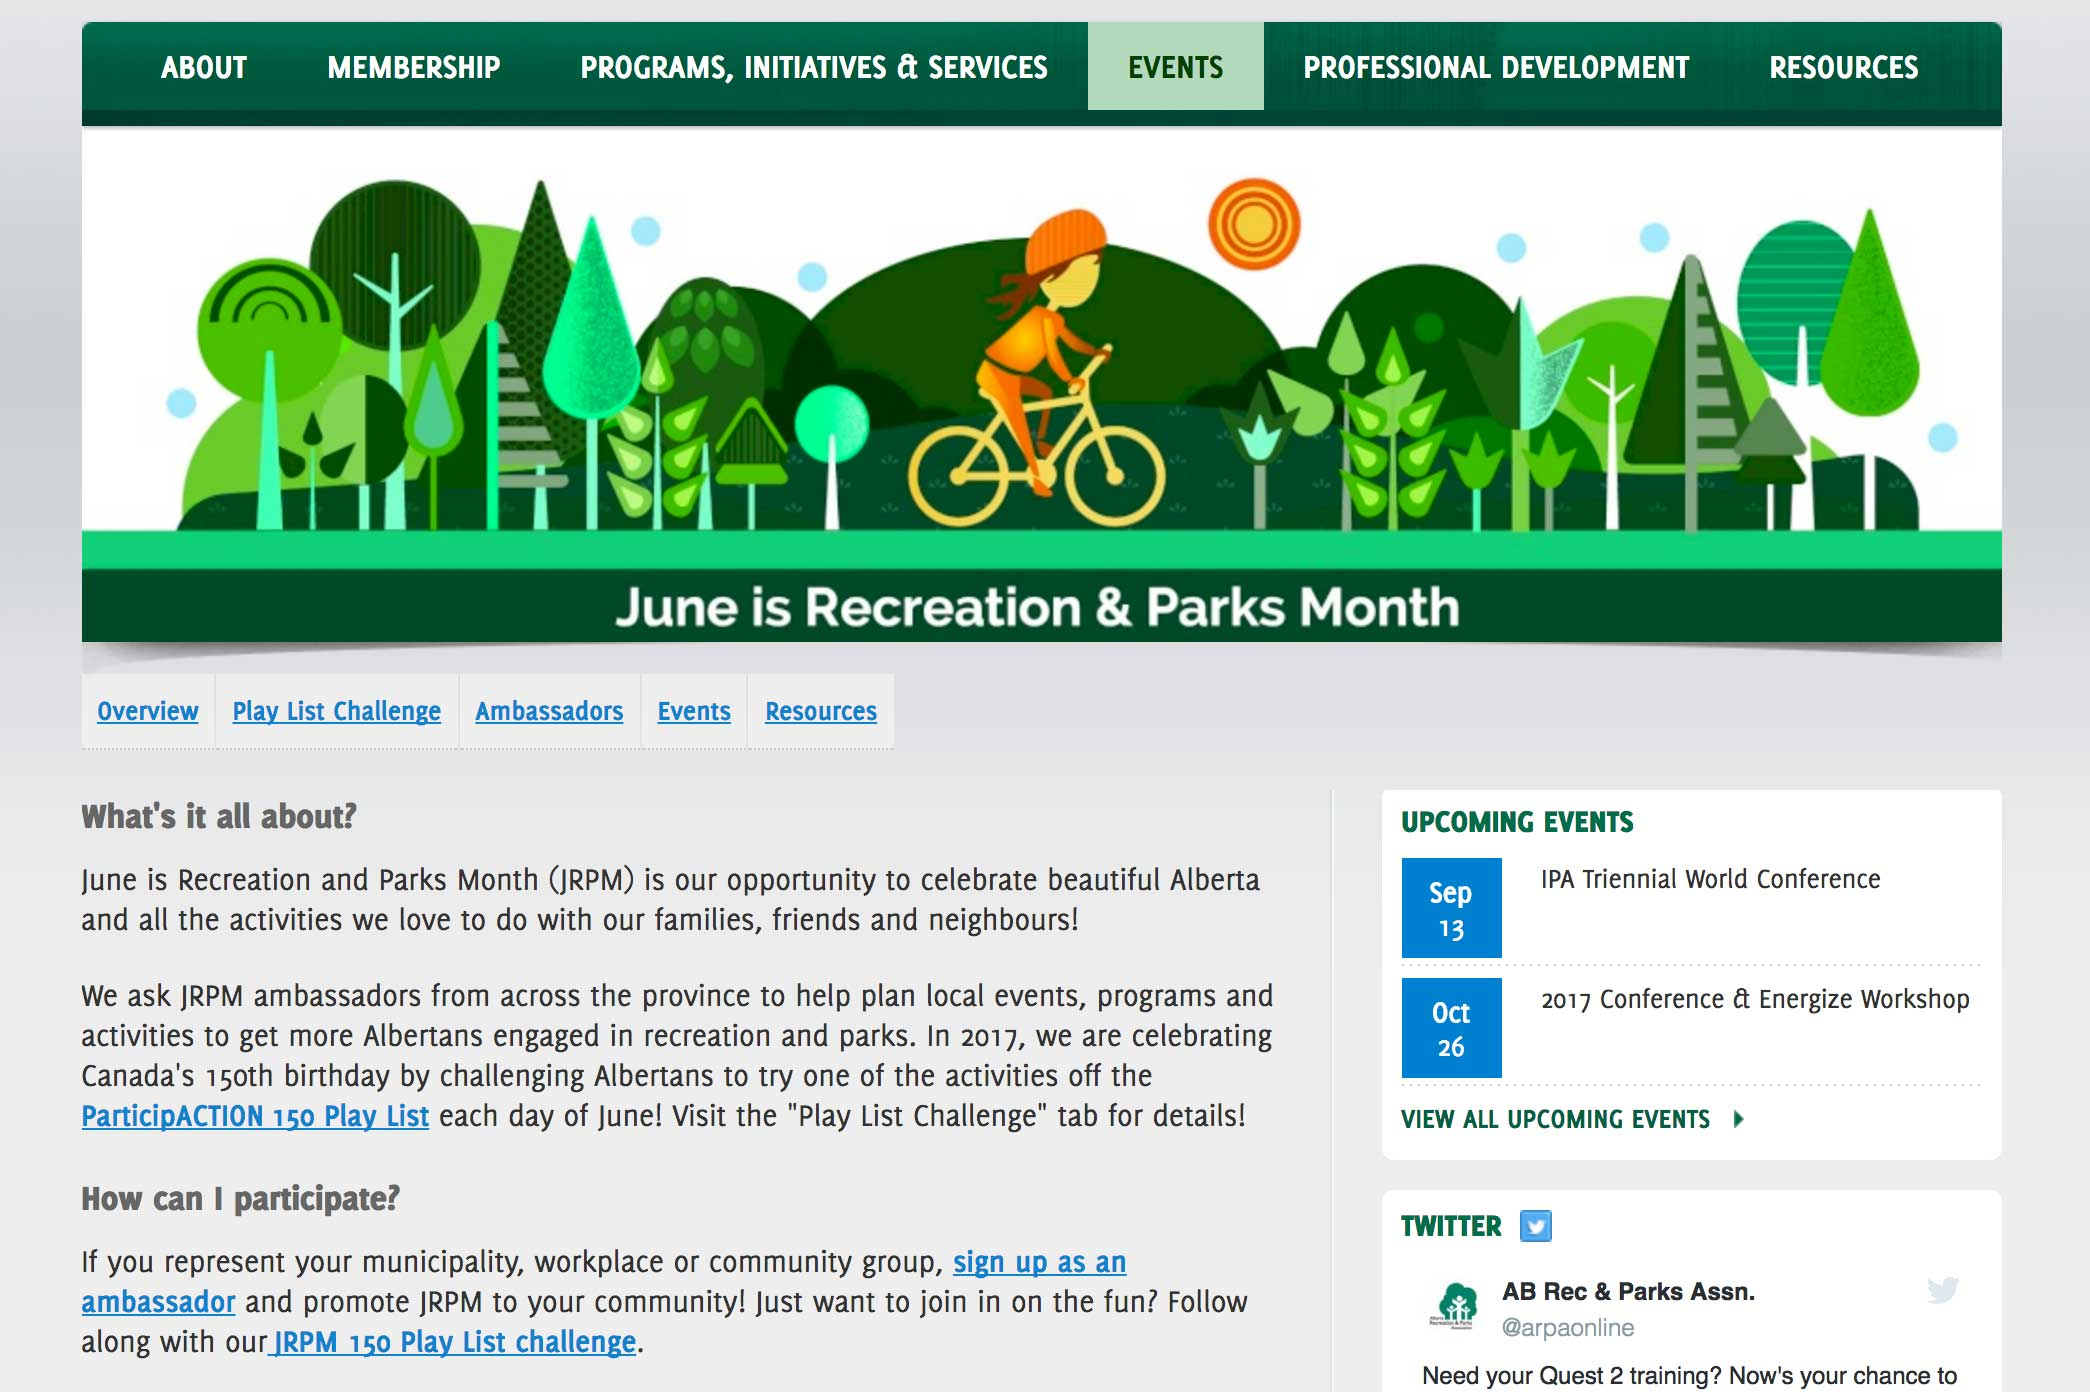 Screenshot of ARPA website Event page